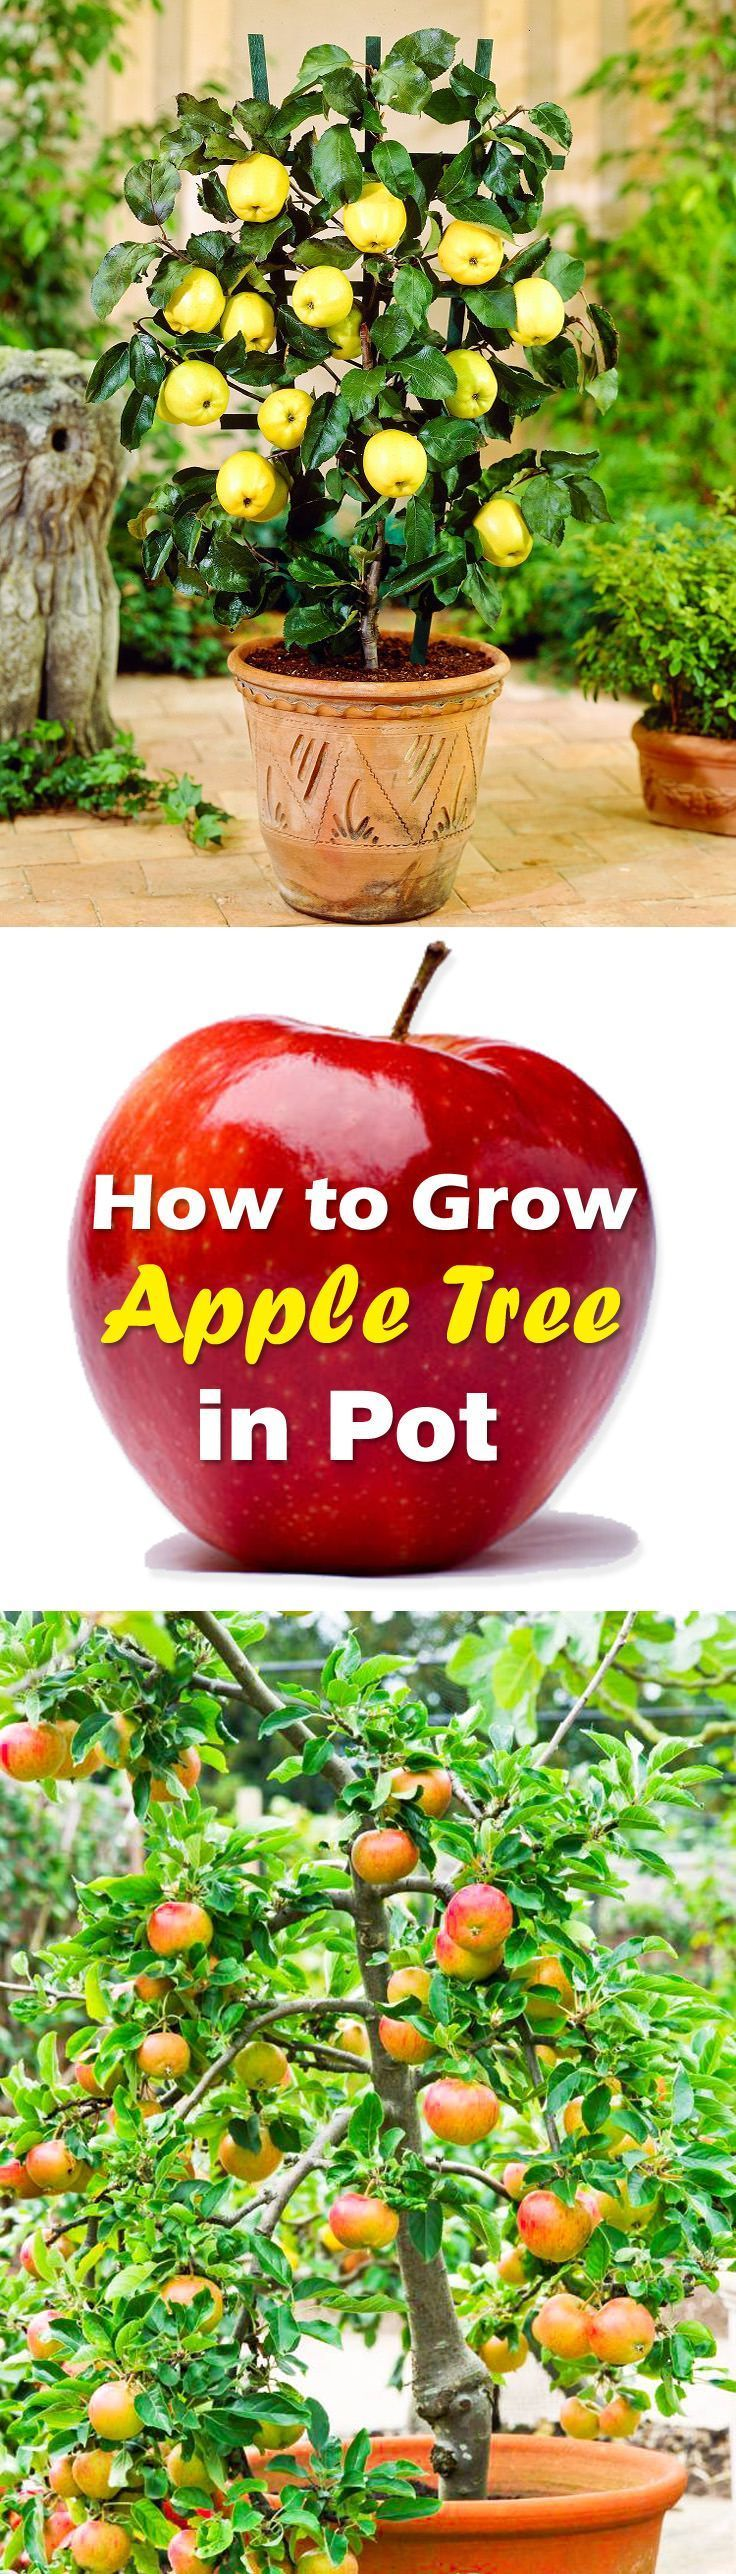 How To Grow An Apple Tree In A Pot Everything About Growing Apples Plants Potted Trees Fruit Garden